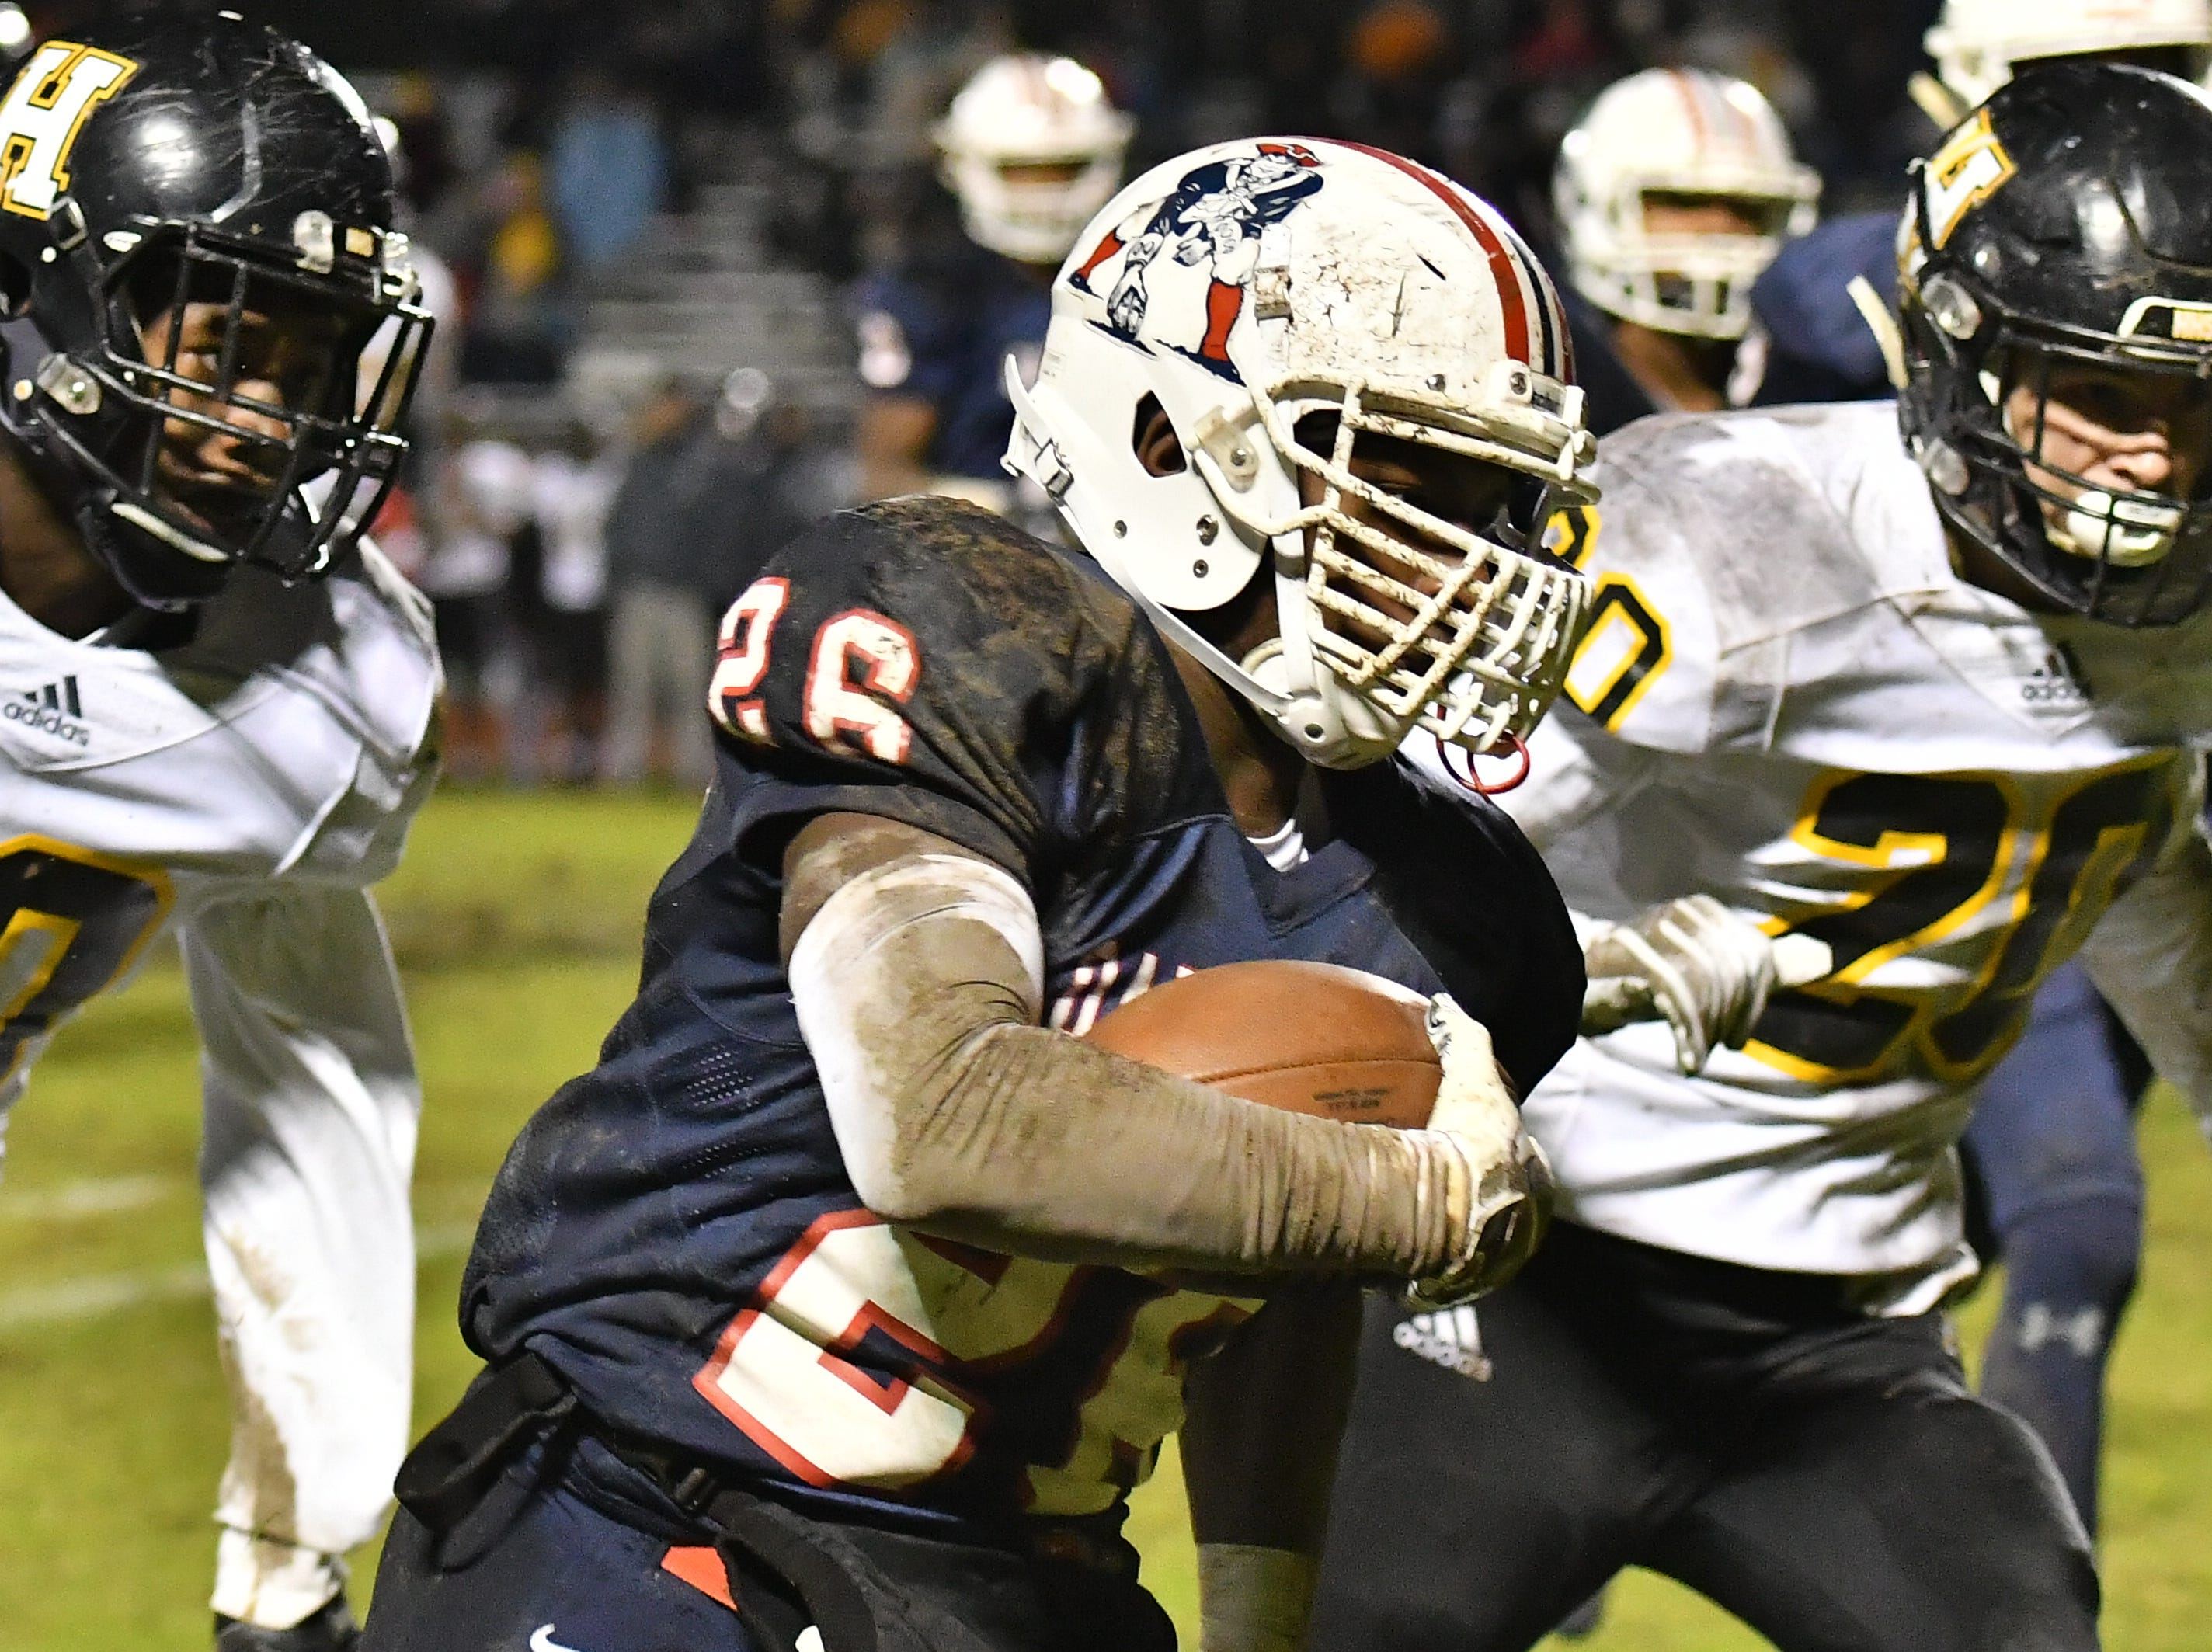 Oakland running back Xavier Myers rushes downfield against Hendersonville Friday night for a large gain.